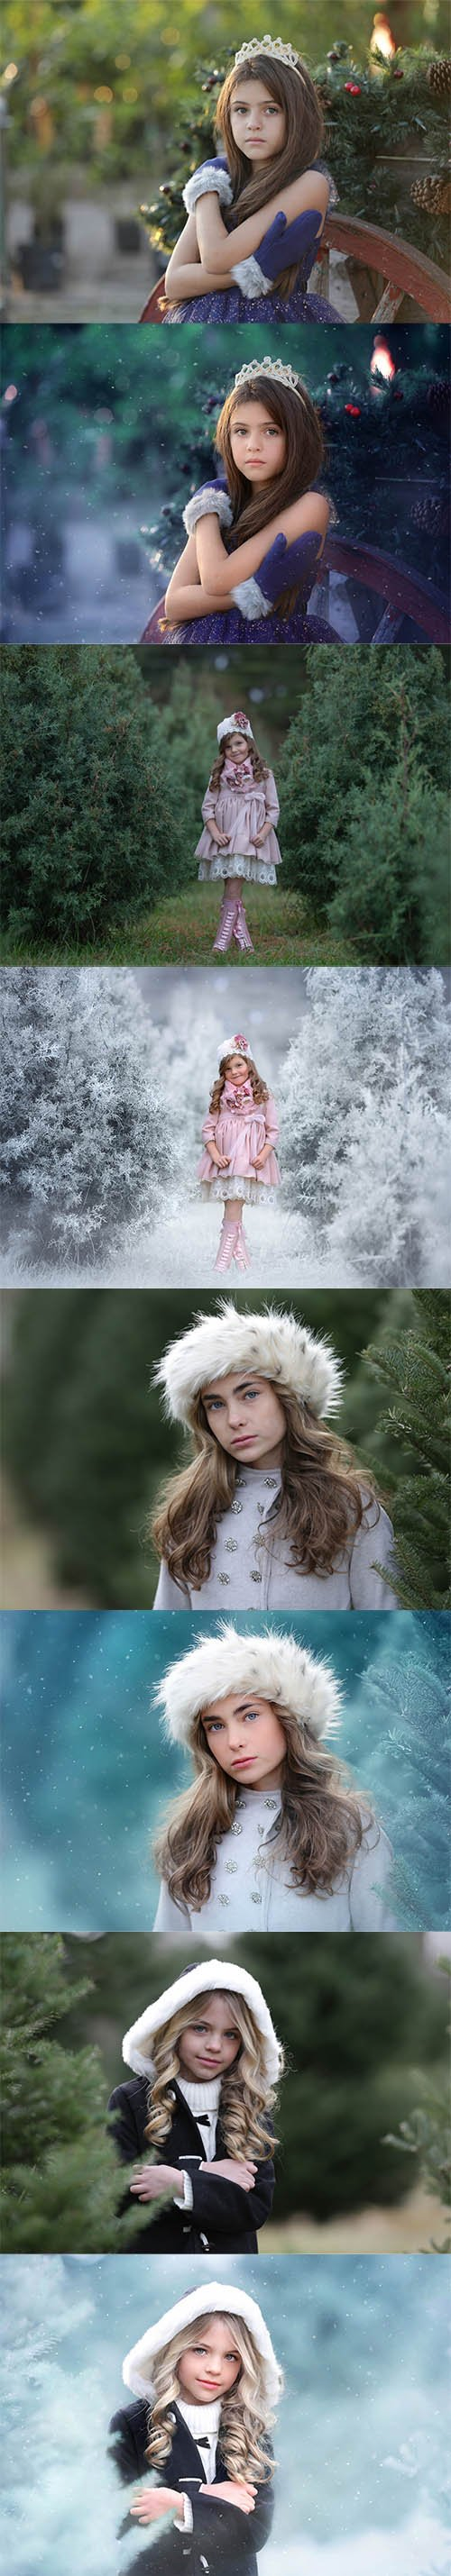 The Innocence Snow Day Collection